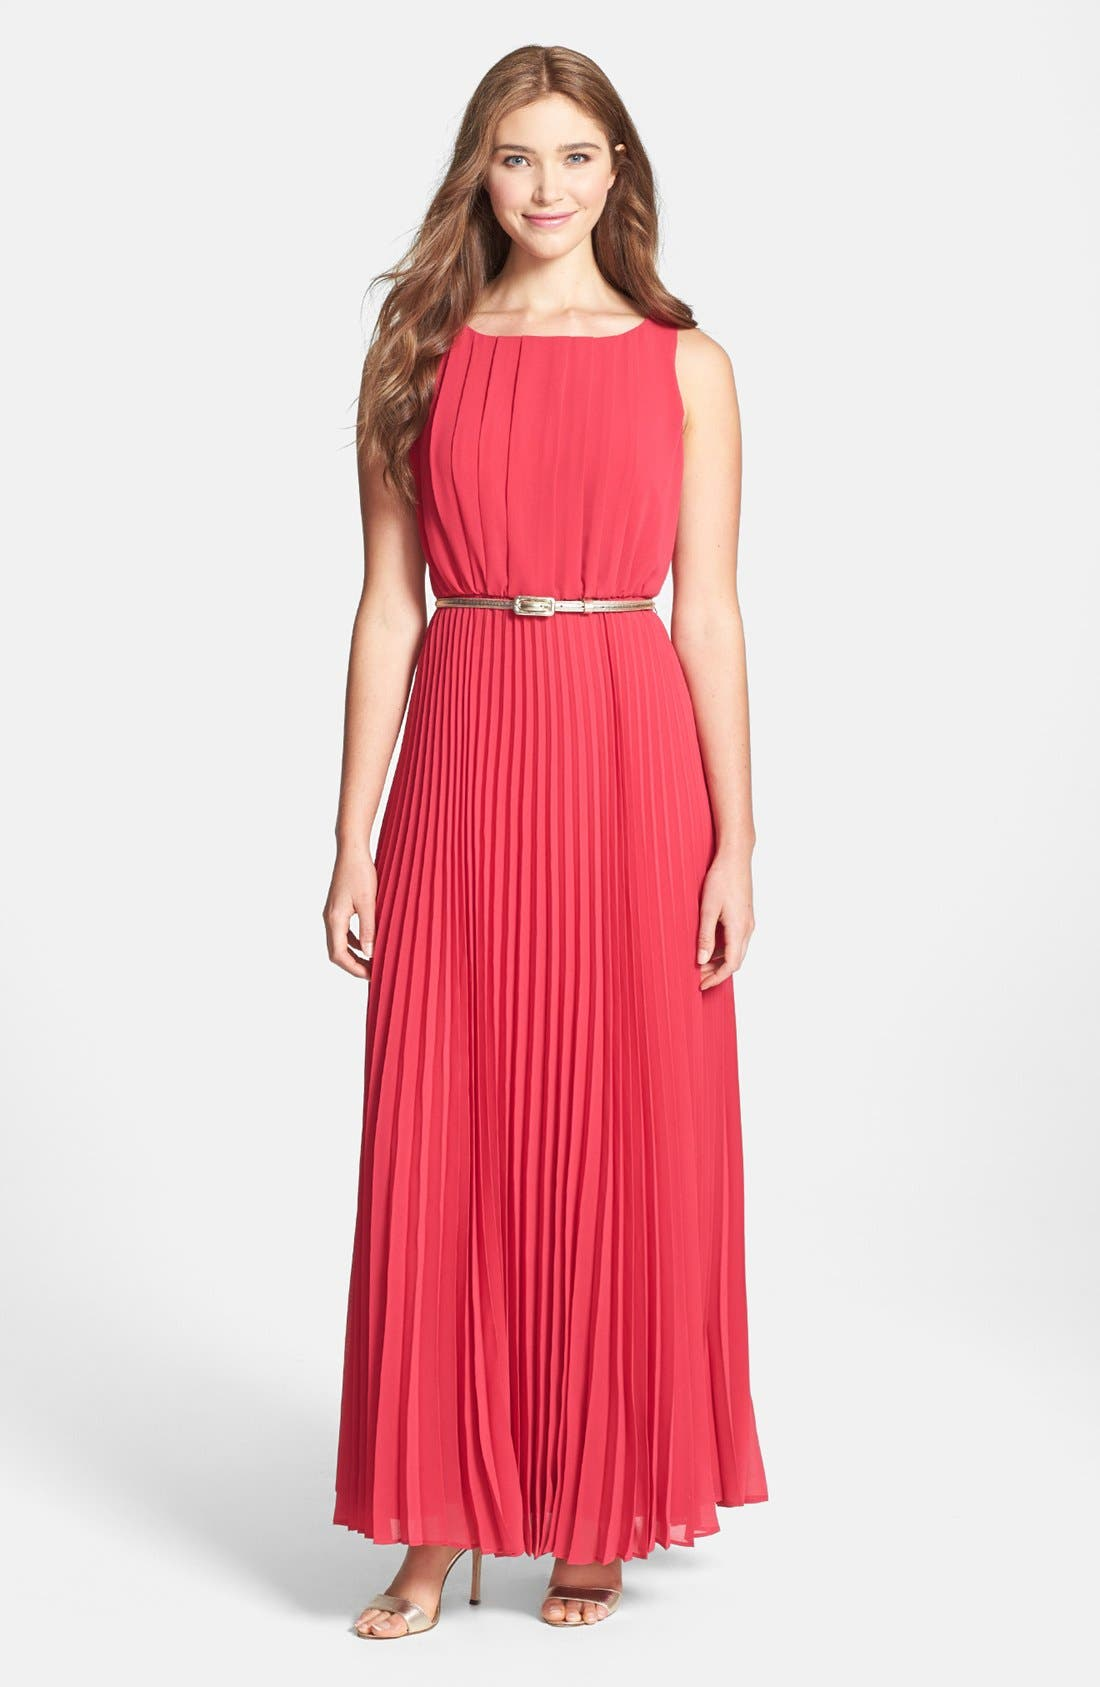 Main Image - Eliza J Pleated Chiffon Maxi Dress (Regular & Petite)